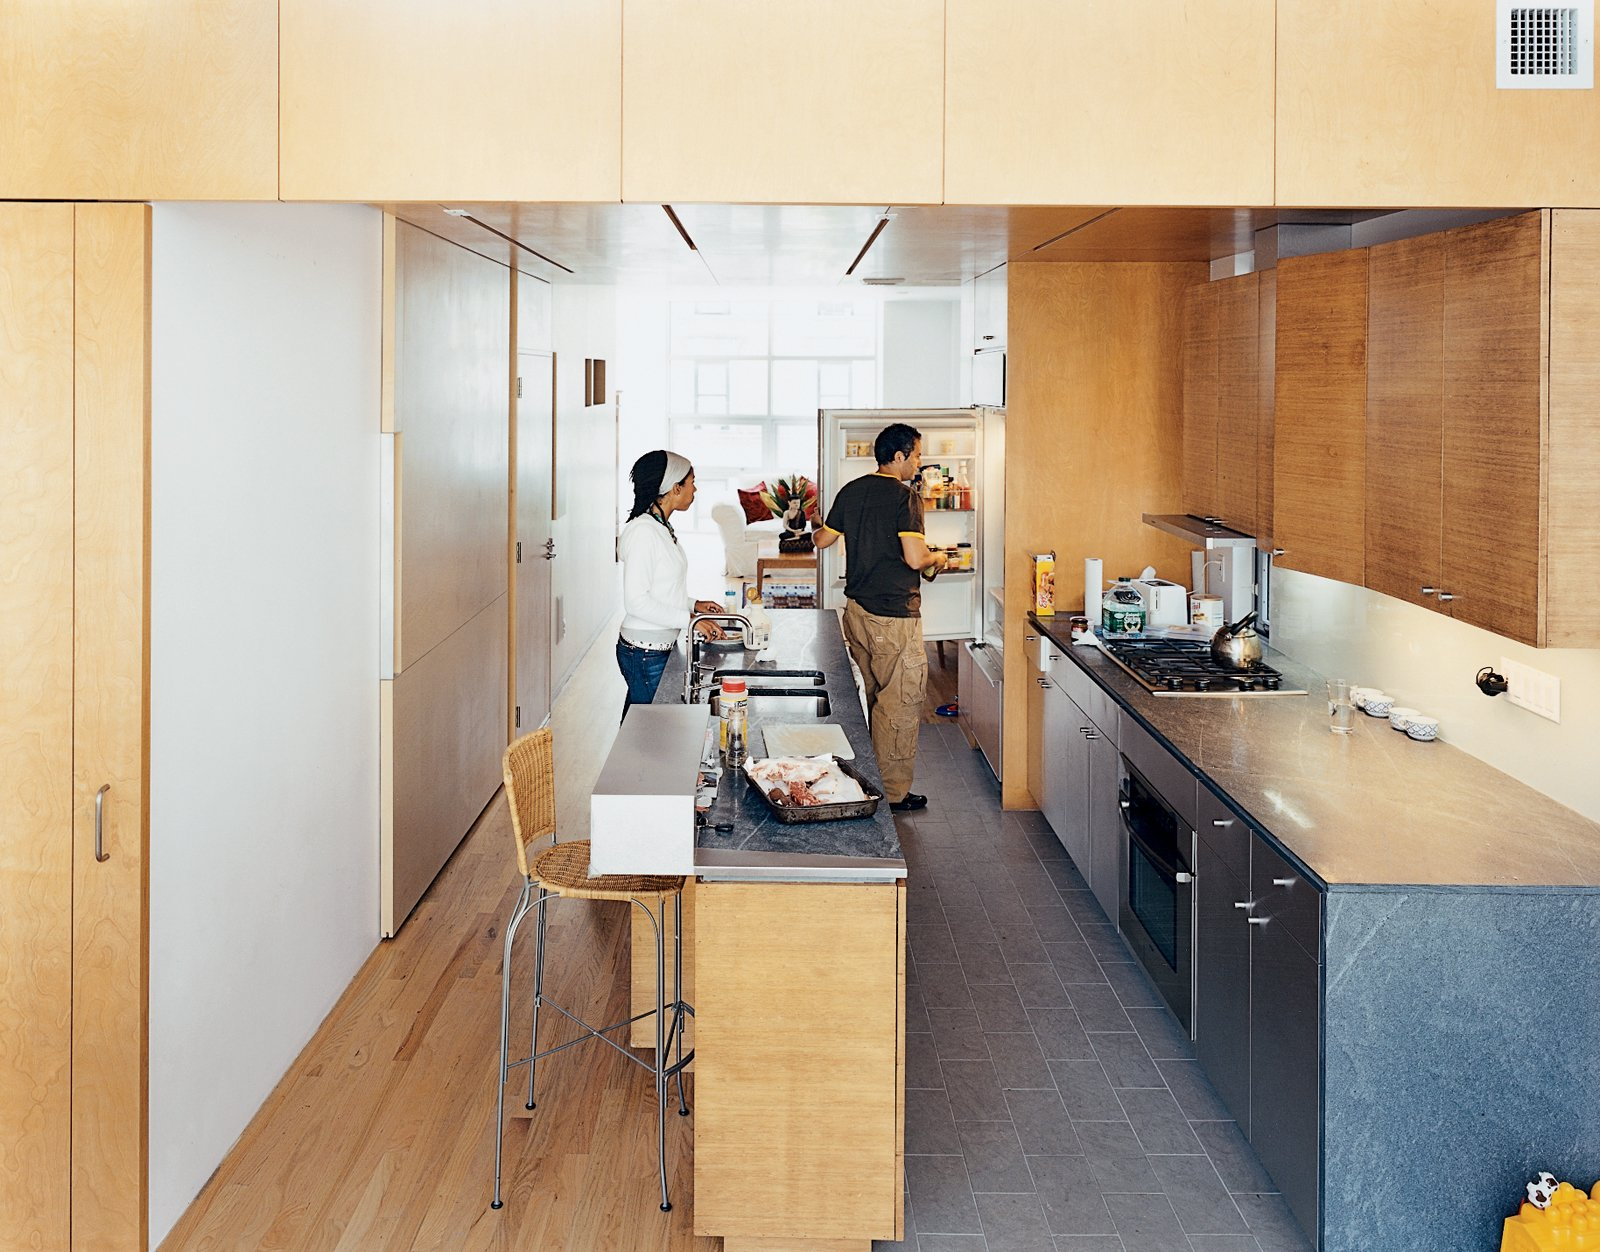 """In the kitchen, the architects contrasted the oak floor, bamboo cabinetry, and birch walls and ceiling with what architect Jonathan Knowles calls """"a family of grays"""": granite floor tiles, limestone countertops, and the steel stairway. The birch wall behind Yvette is actually the sliding door to the pantry closet."""